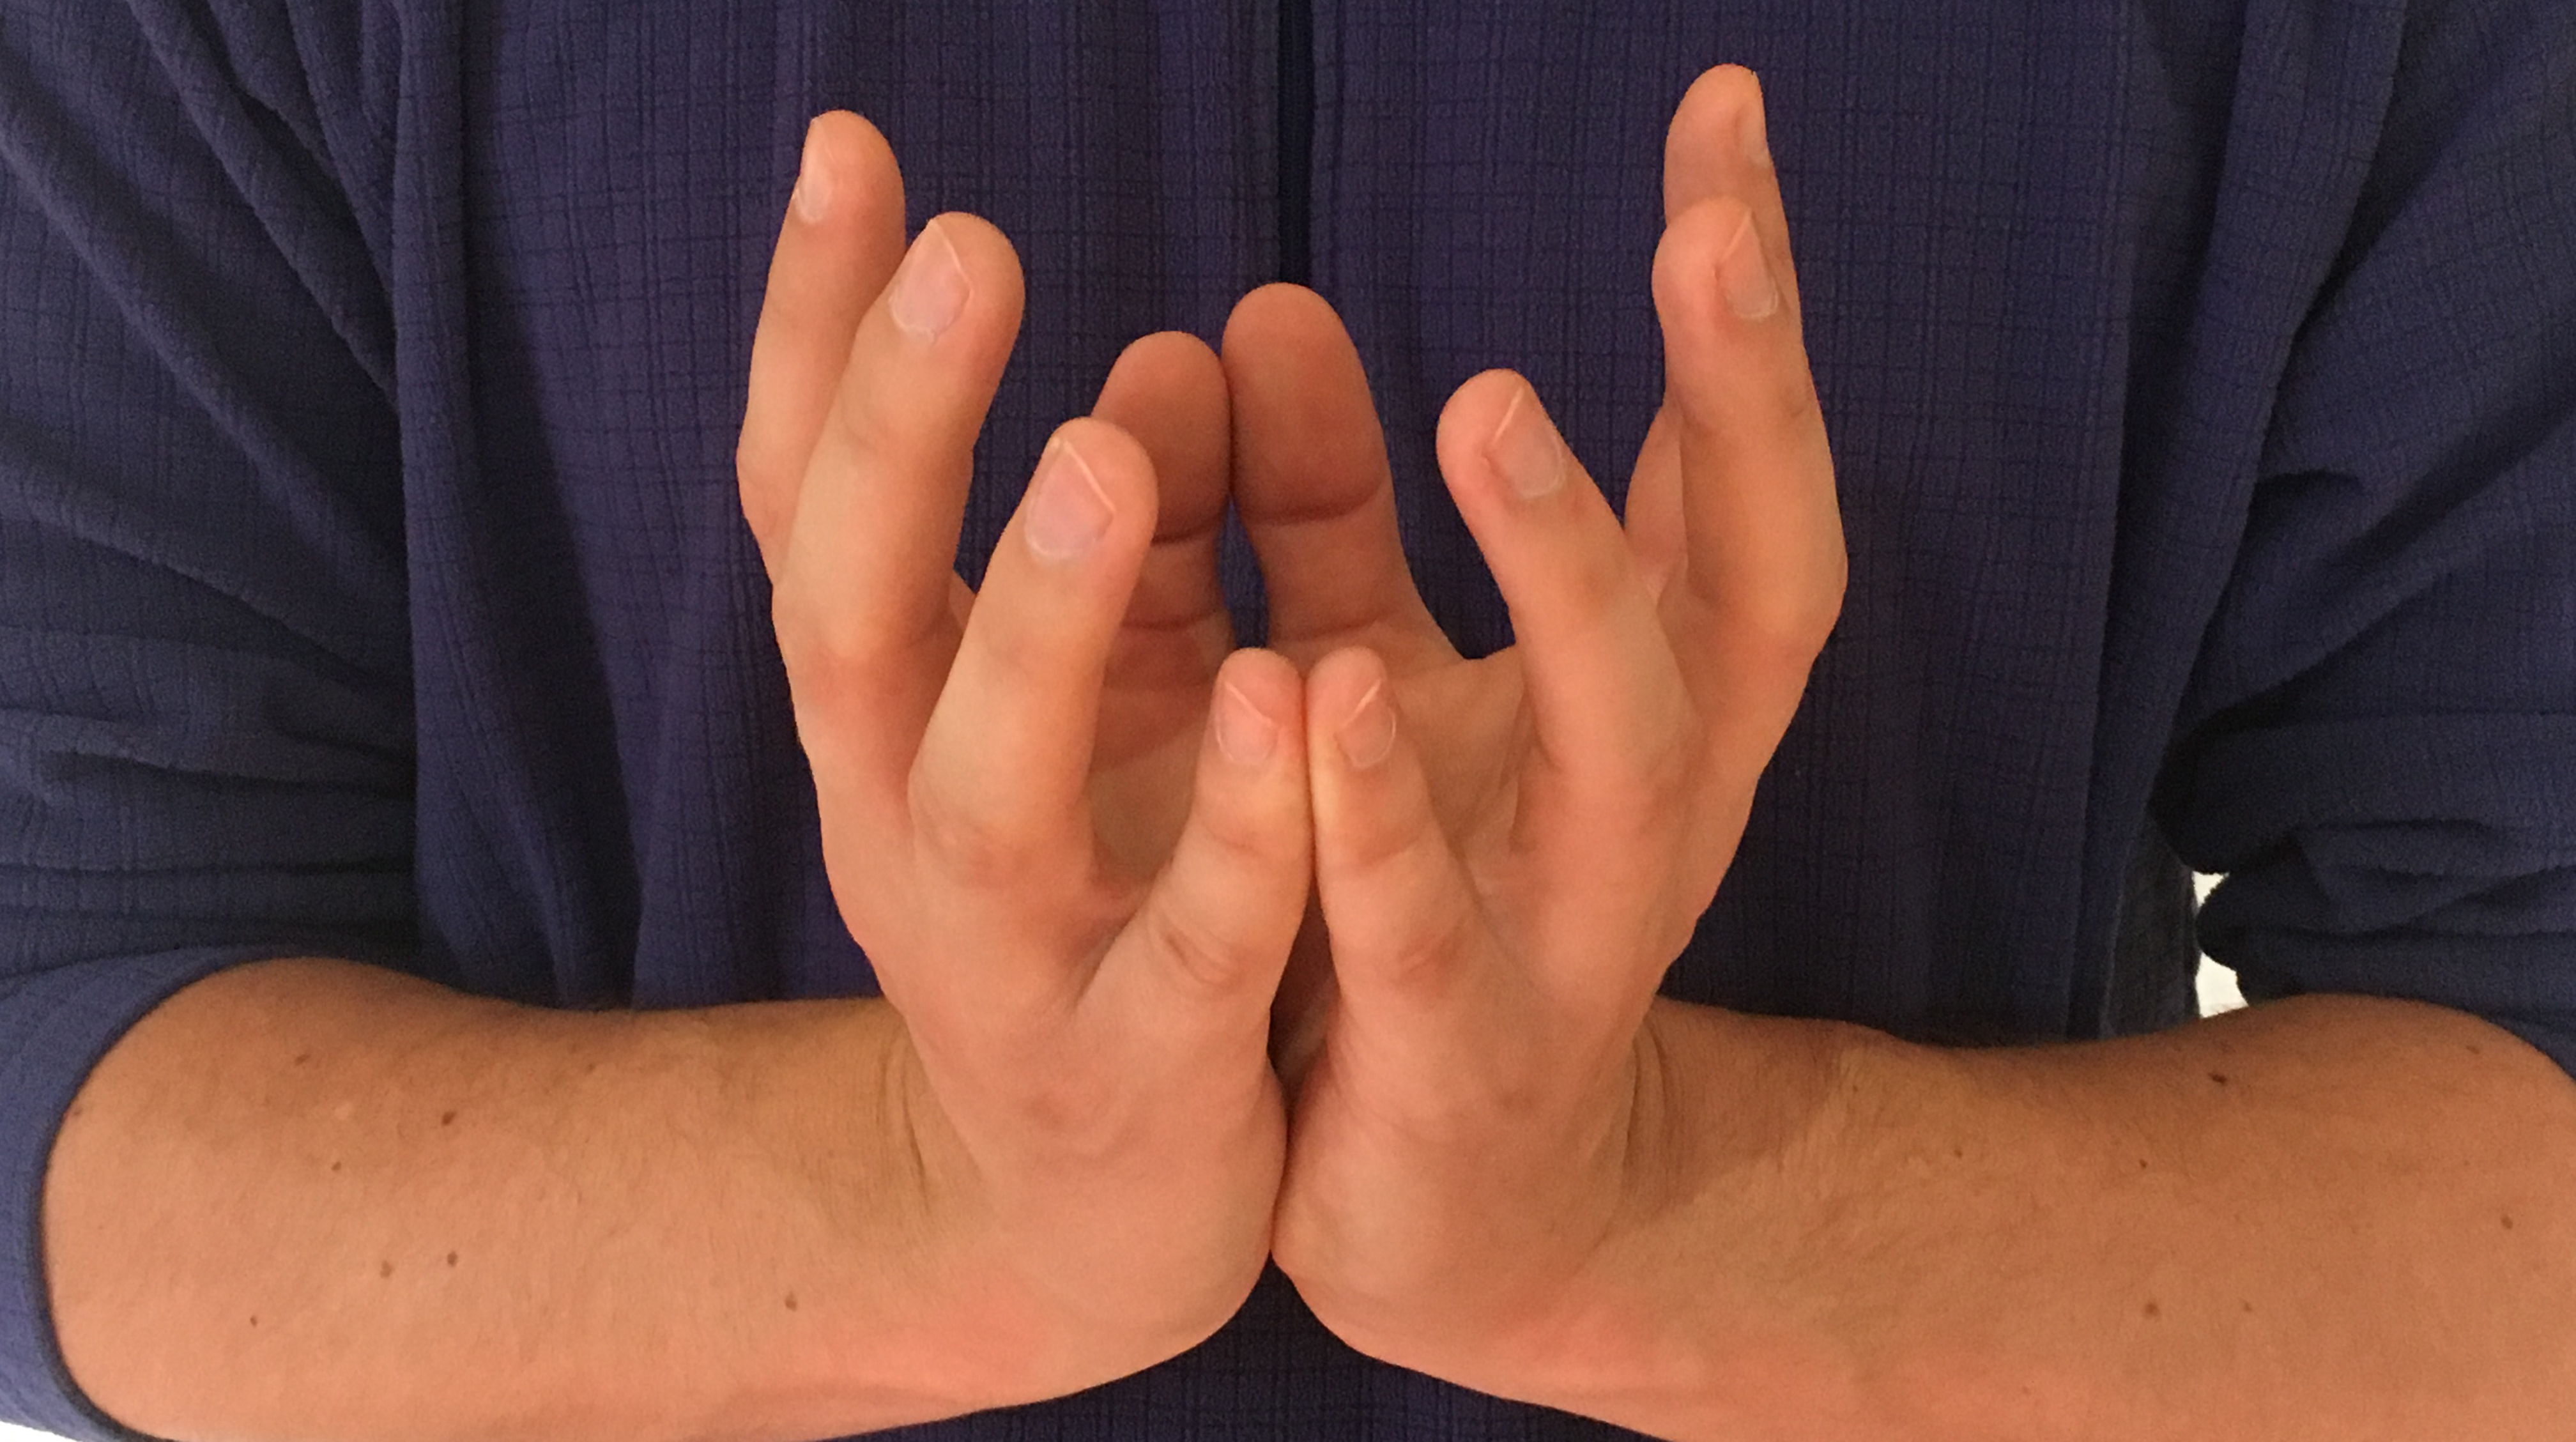 Mudras for inner peace let it go yoga and the bases of your palms pressed together as you separate the centers of your palms and fan out the rest of your finger revealing your lotus flower izmirmasajfo